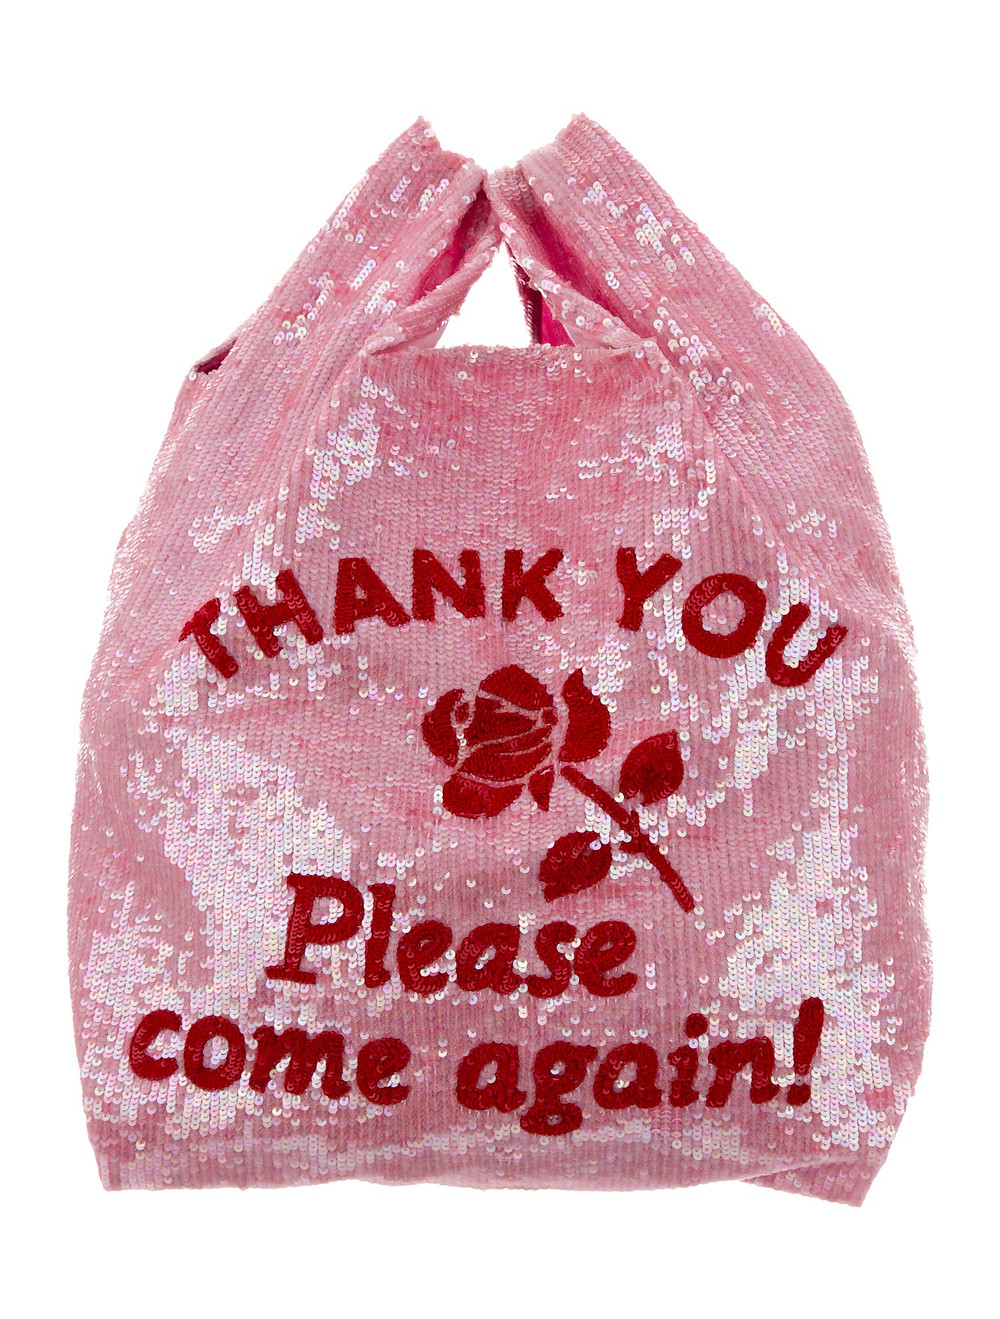 How to go plastic free: carry a reusable bag. This sequinned tote by Ashish is a particularly fun one.